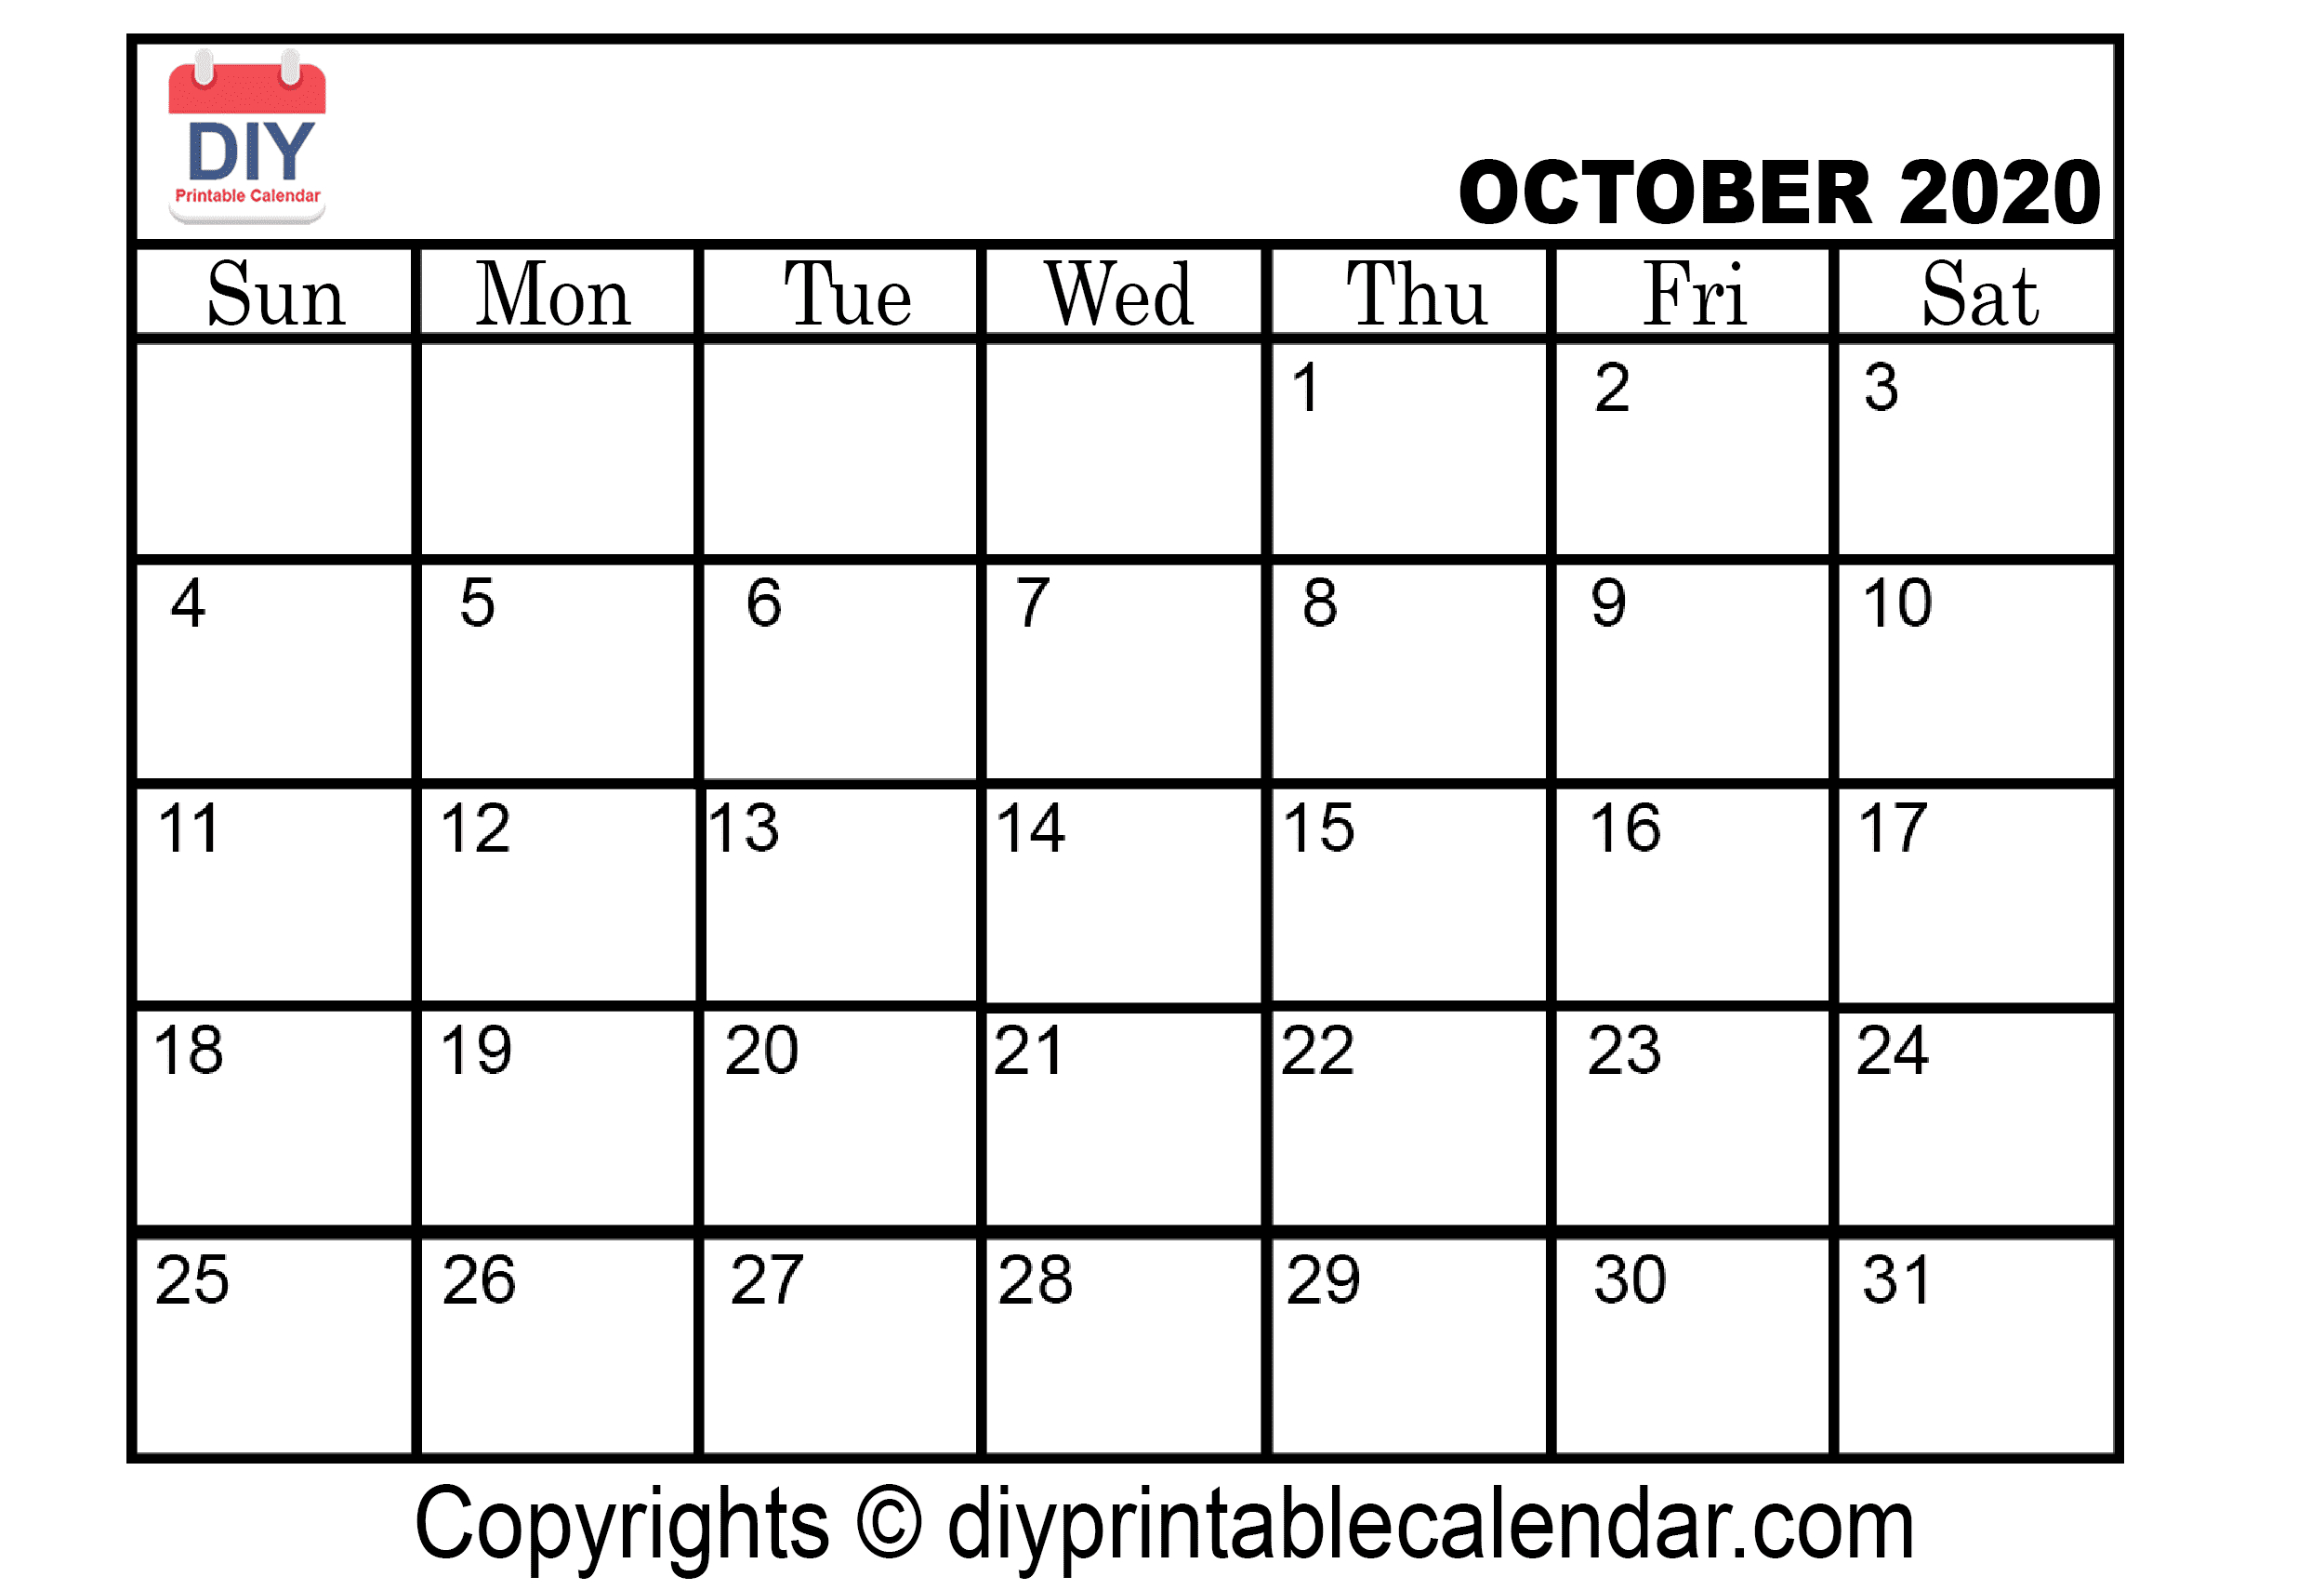 October 2020 Printable Calendar Template